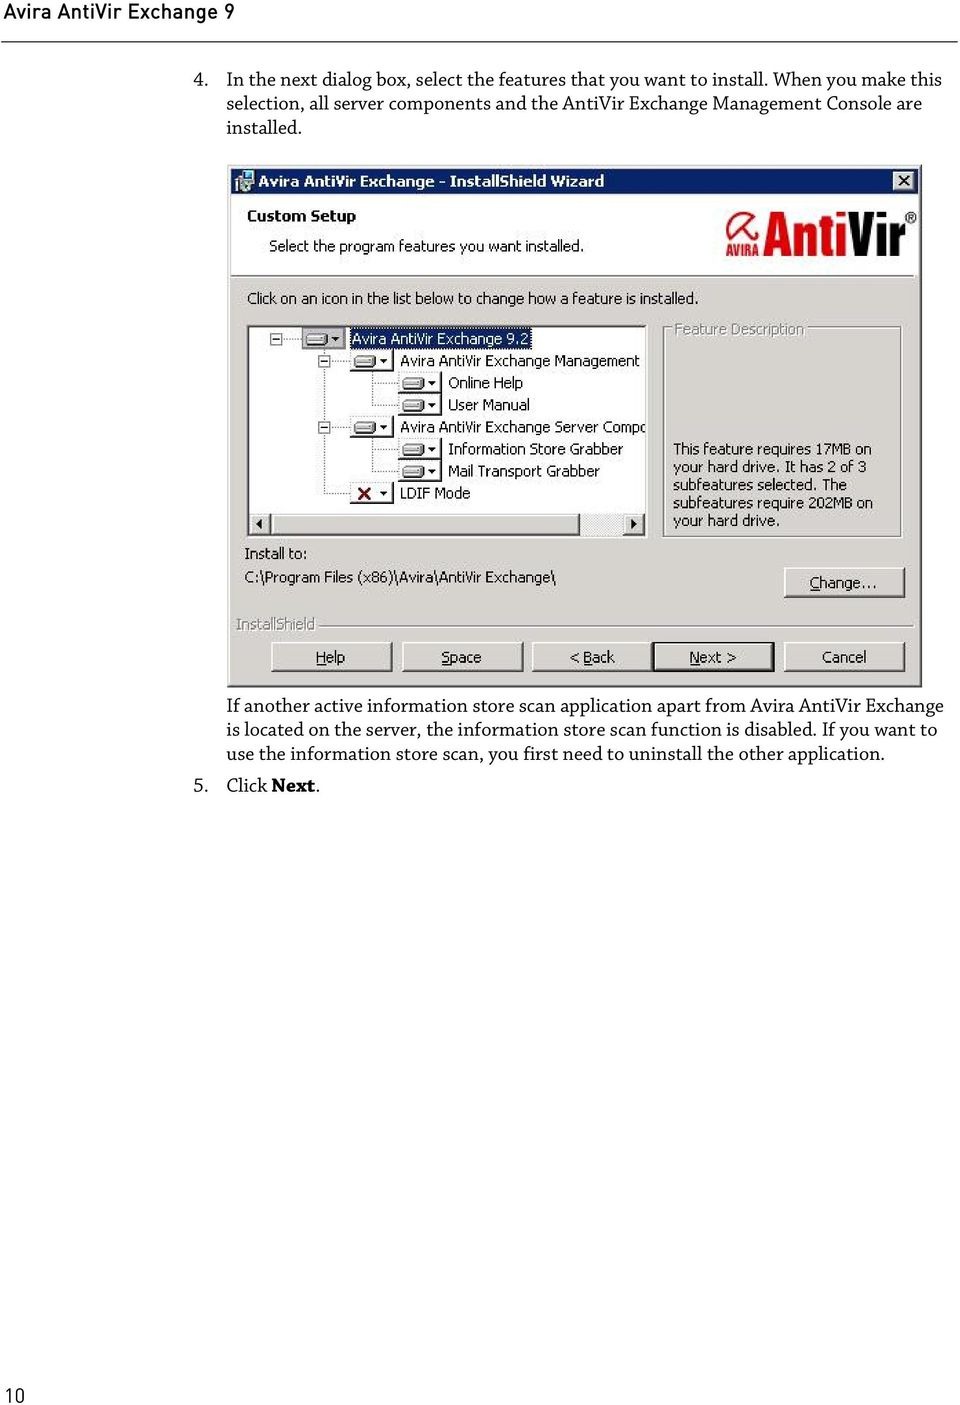 If another active information store scan application apart from Avira AntiVir Exchange is located on the server, the